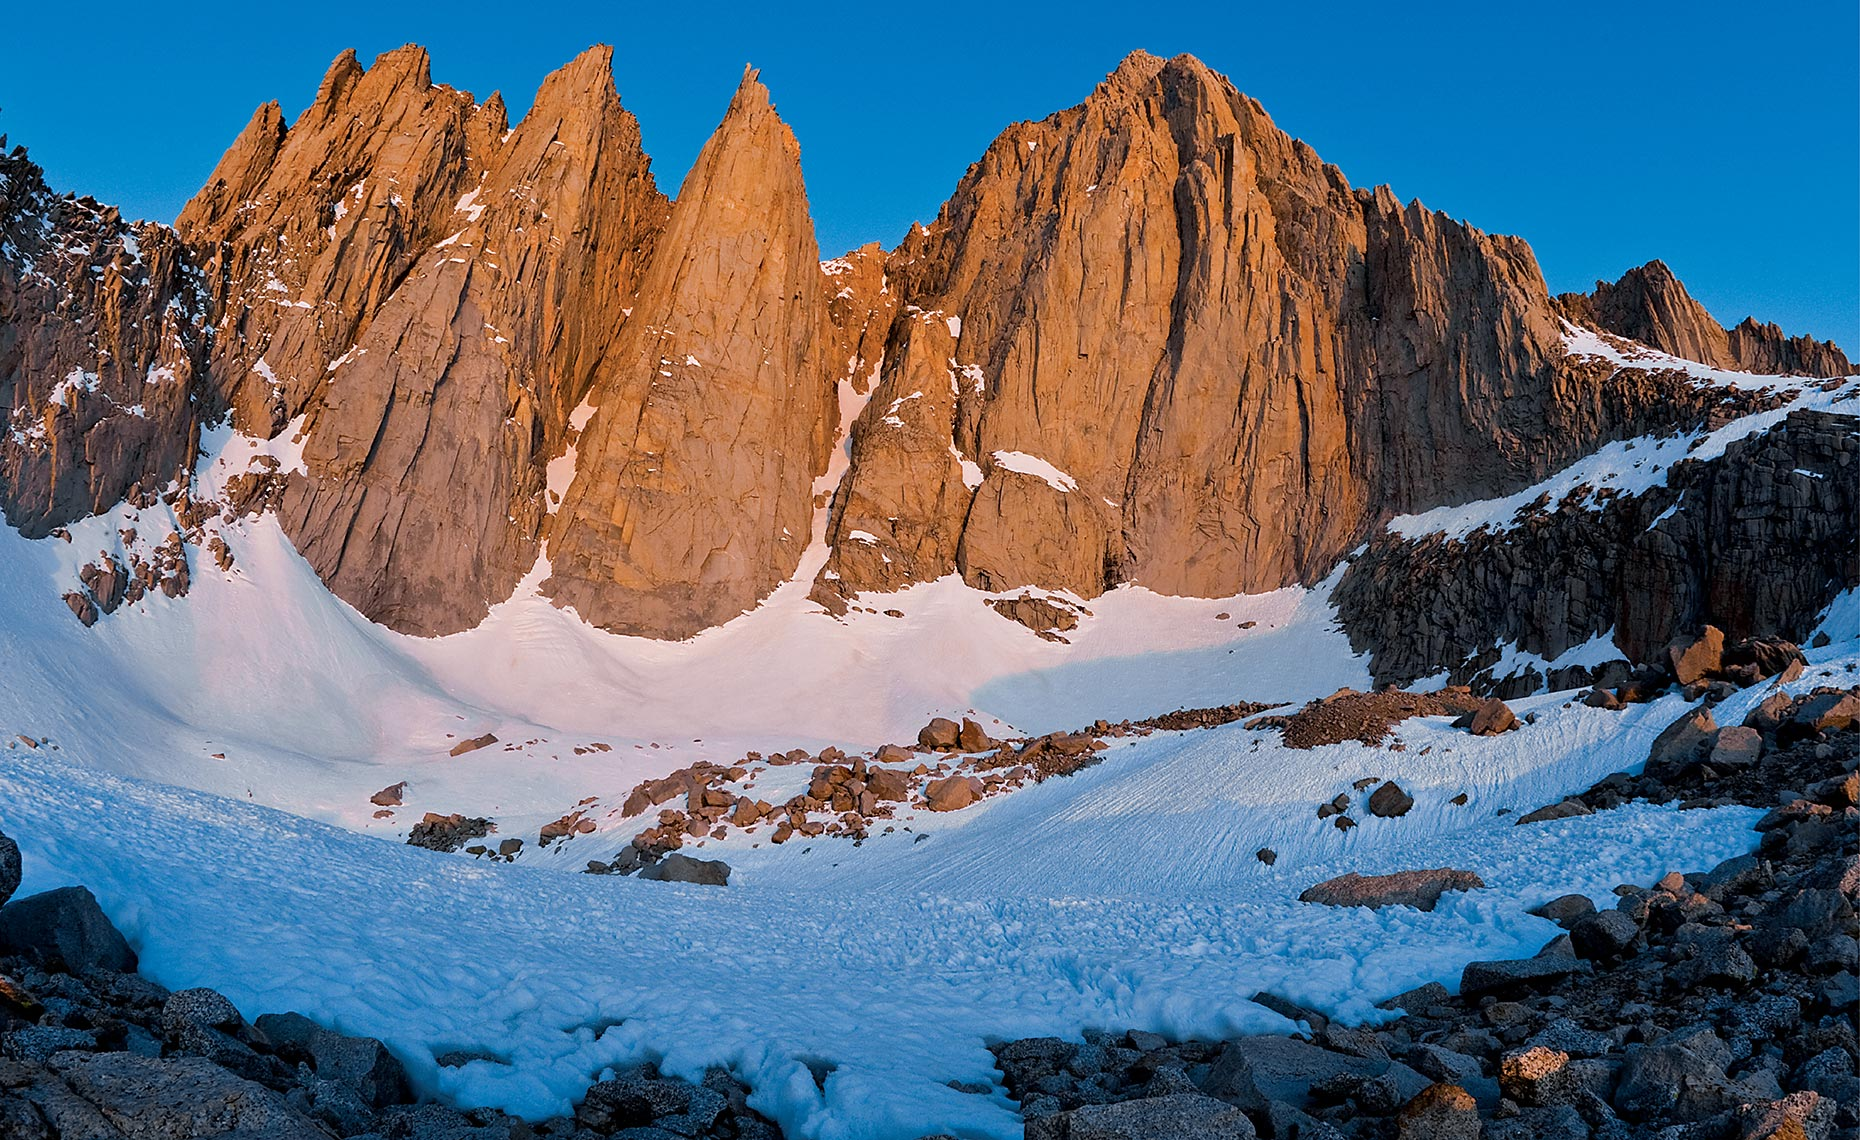 02_Mt_Whitney_California_Environment_Landscape_Chris_Wellhausen_Photography.JPG